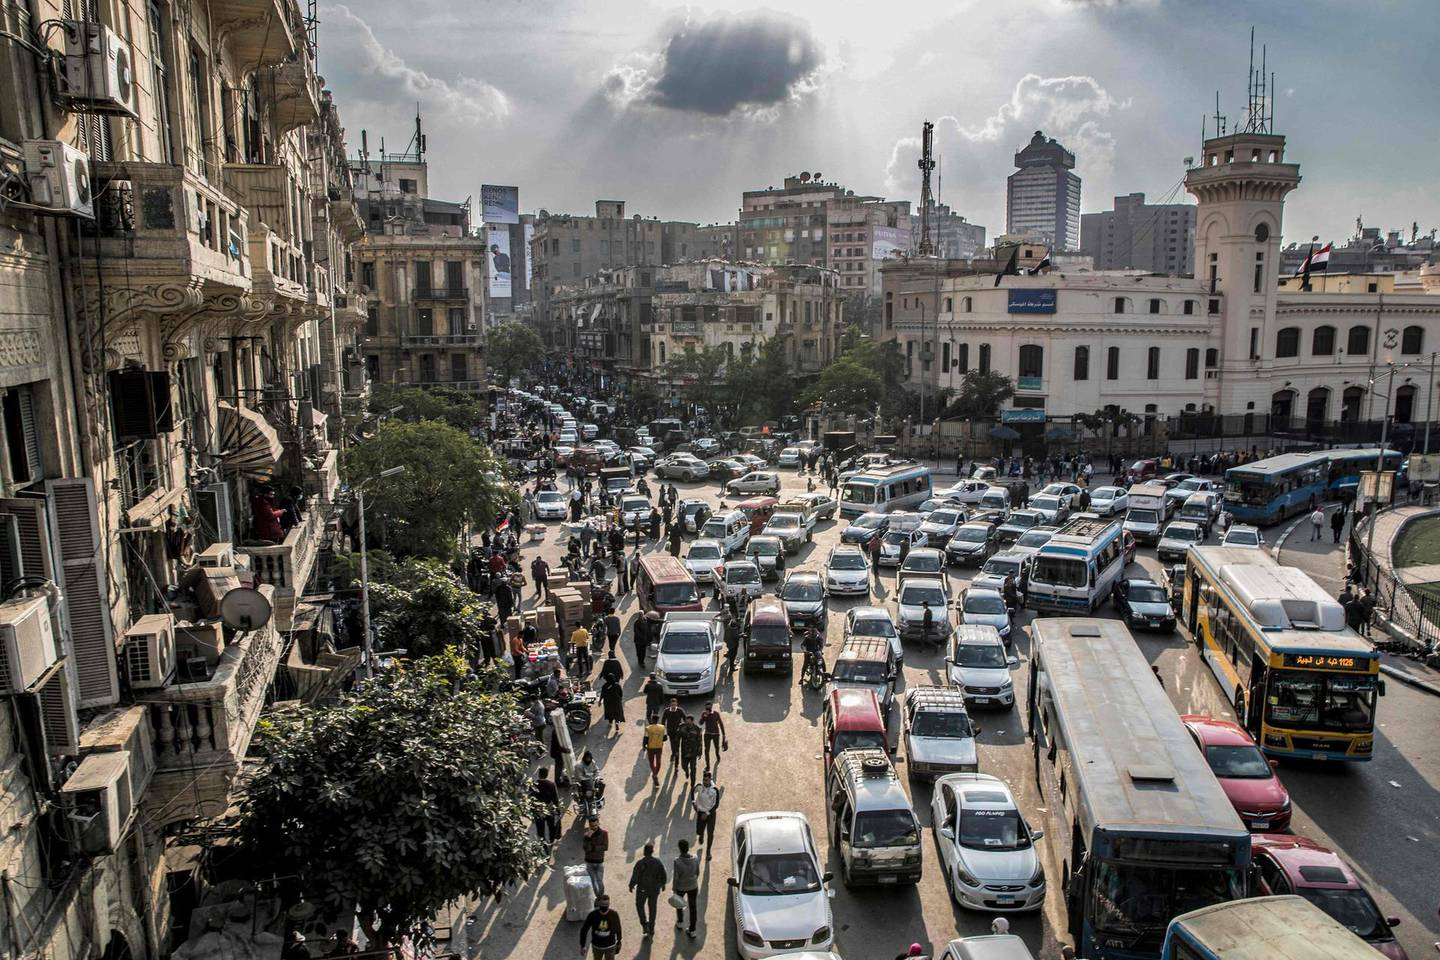 This picture taken on February 22, 2021 shows a view of vehicles stuck in a traffic jam in the central Attaba district of Egypt's capital Cairo. In gridlocked and heavily polluted Cairo, startups are searching for technological solutions to solve the transport headaches for an expanding megacity already struggling with over 20 million people. Cairo, the most populous Arab city where a fifth of all Egyptians live, is ranked 30th worst in the world for congestion, according TomTom, the Dutch vehicle navigations systems maker. / AFP / Khaled DESOUKI